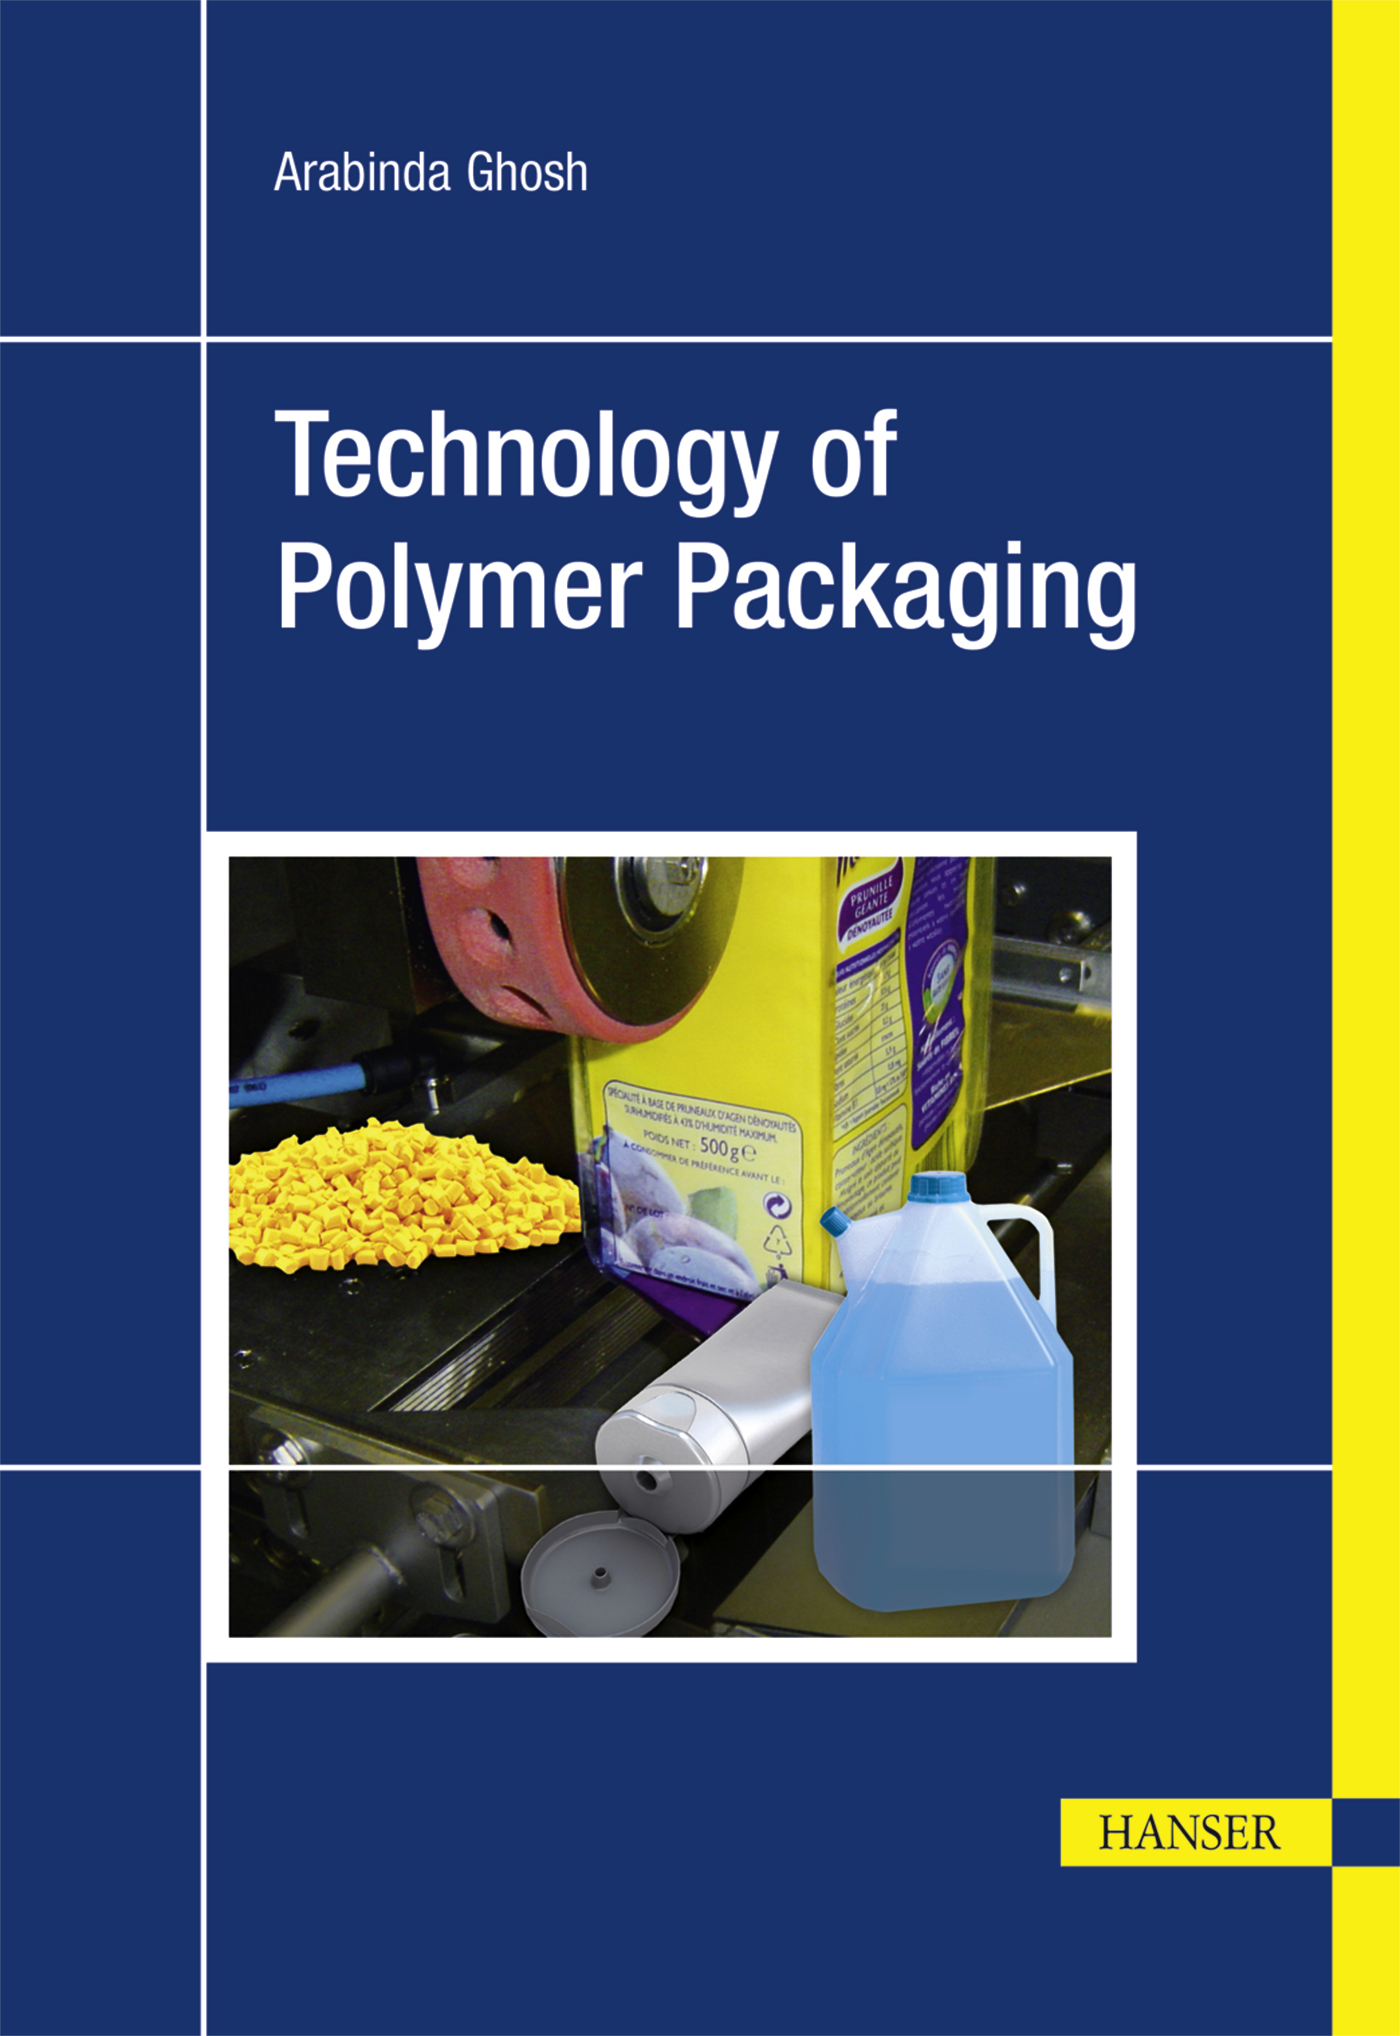 Ghosh, Technology of Polymer Packaging, 978-1-56990-576-0